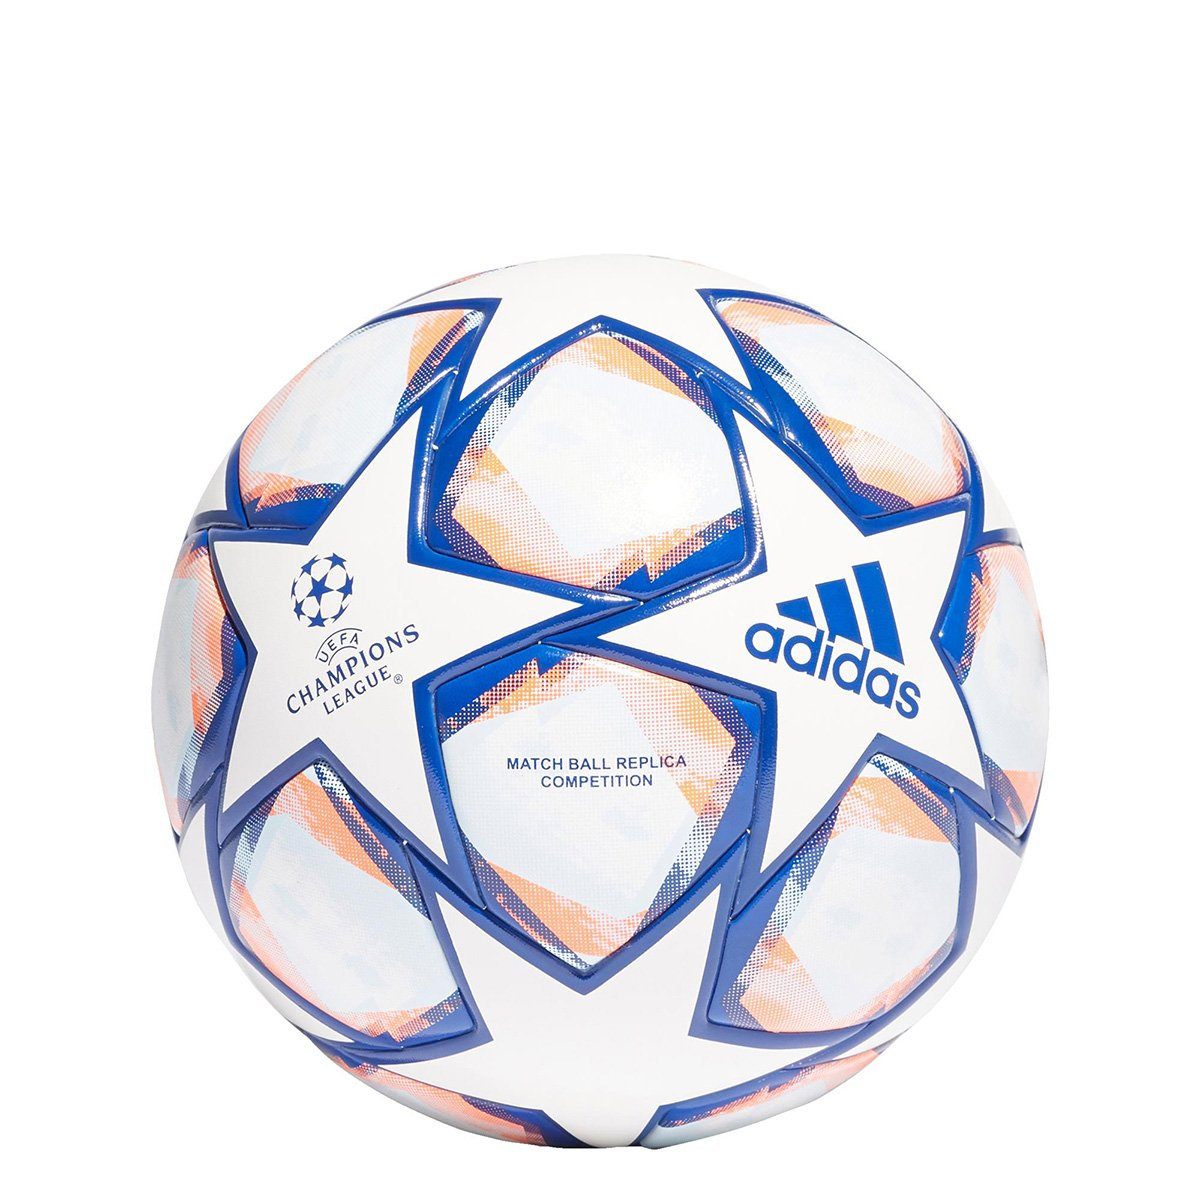 Bola de Futebol Campo Adidas UEFA Champions League Finale 20 Match Ball Réplica Competition